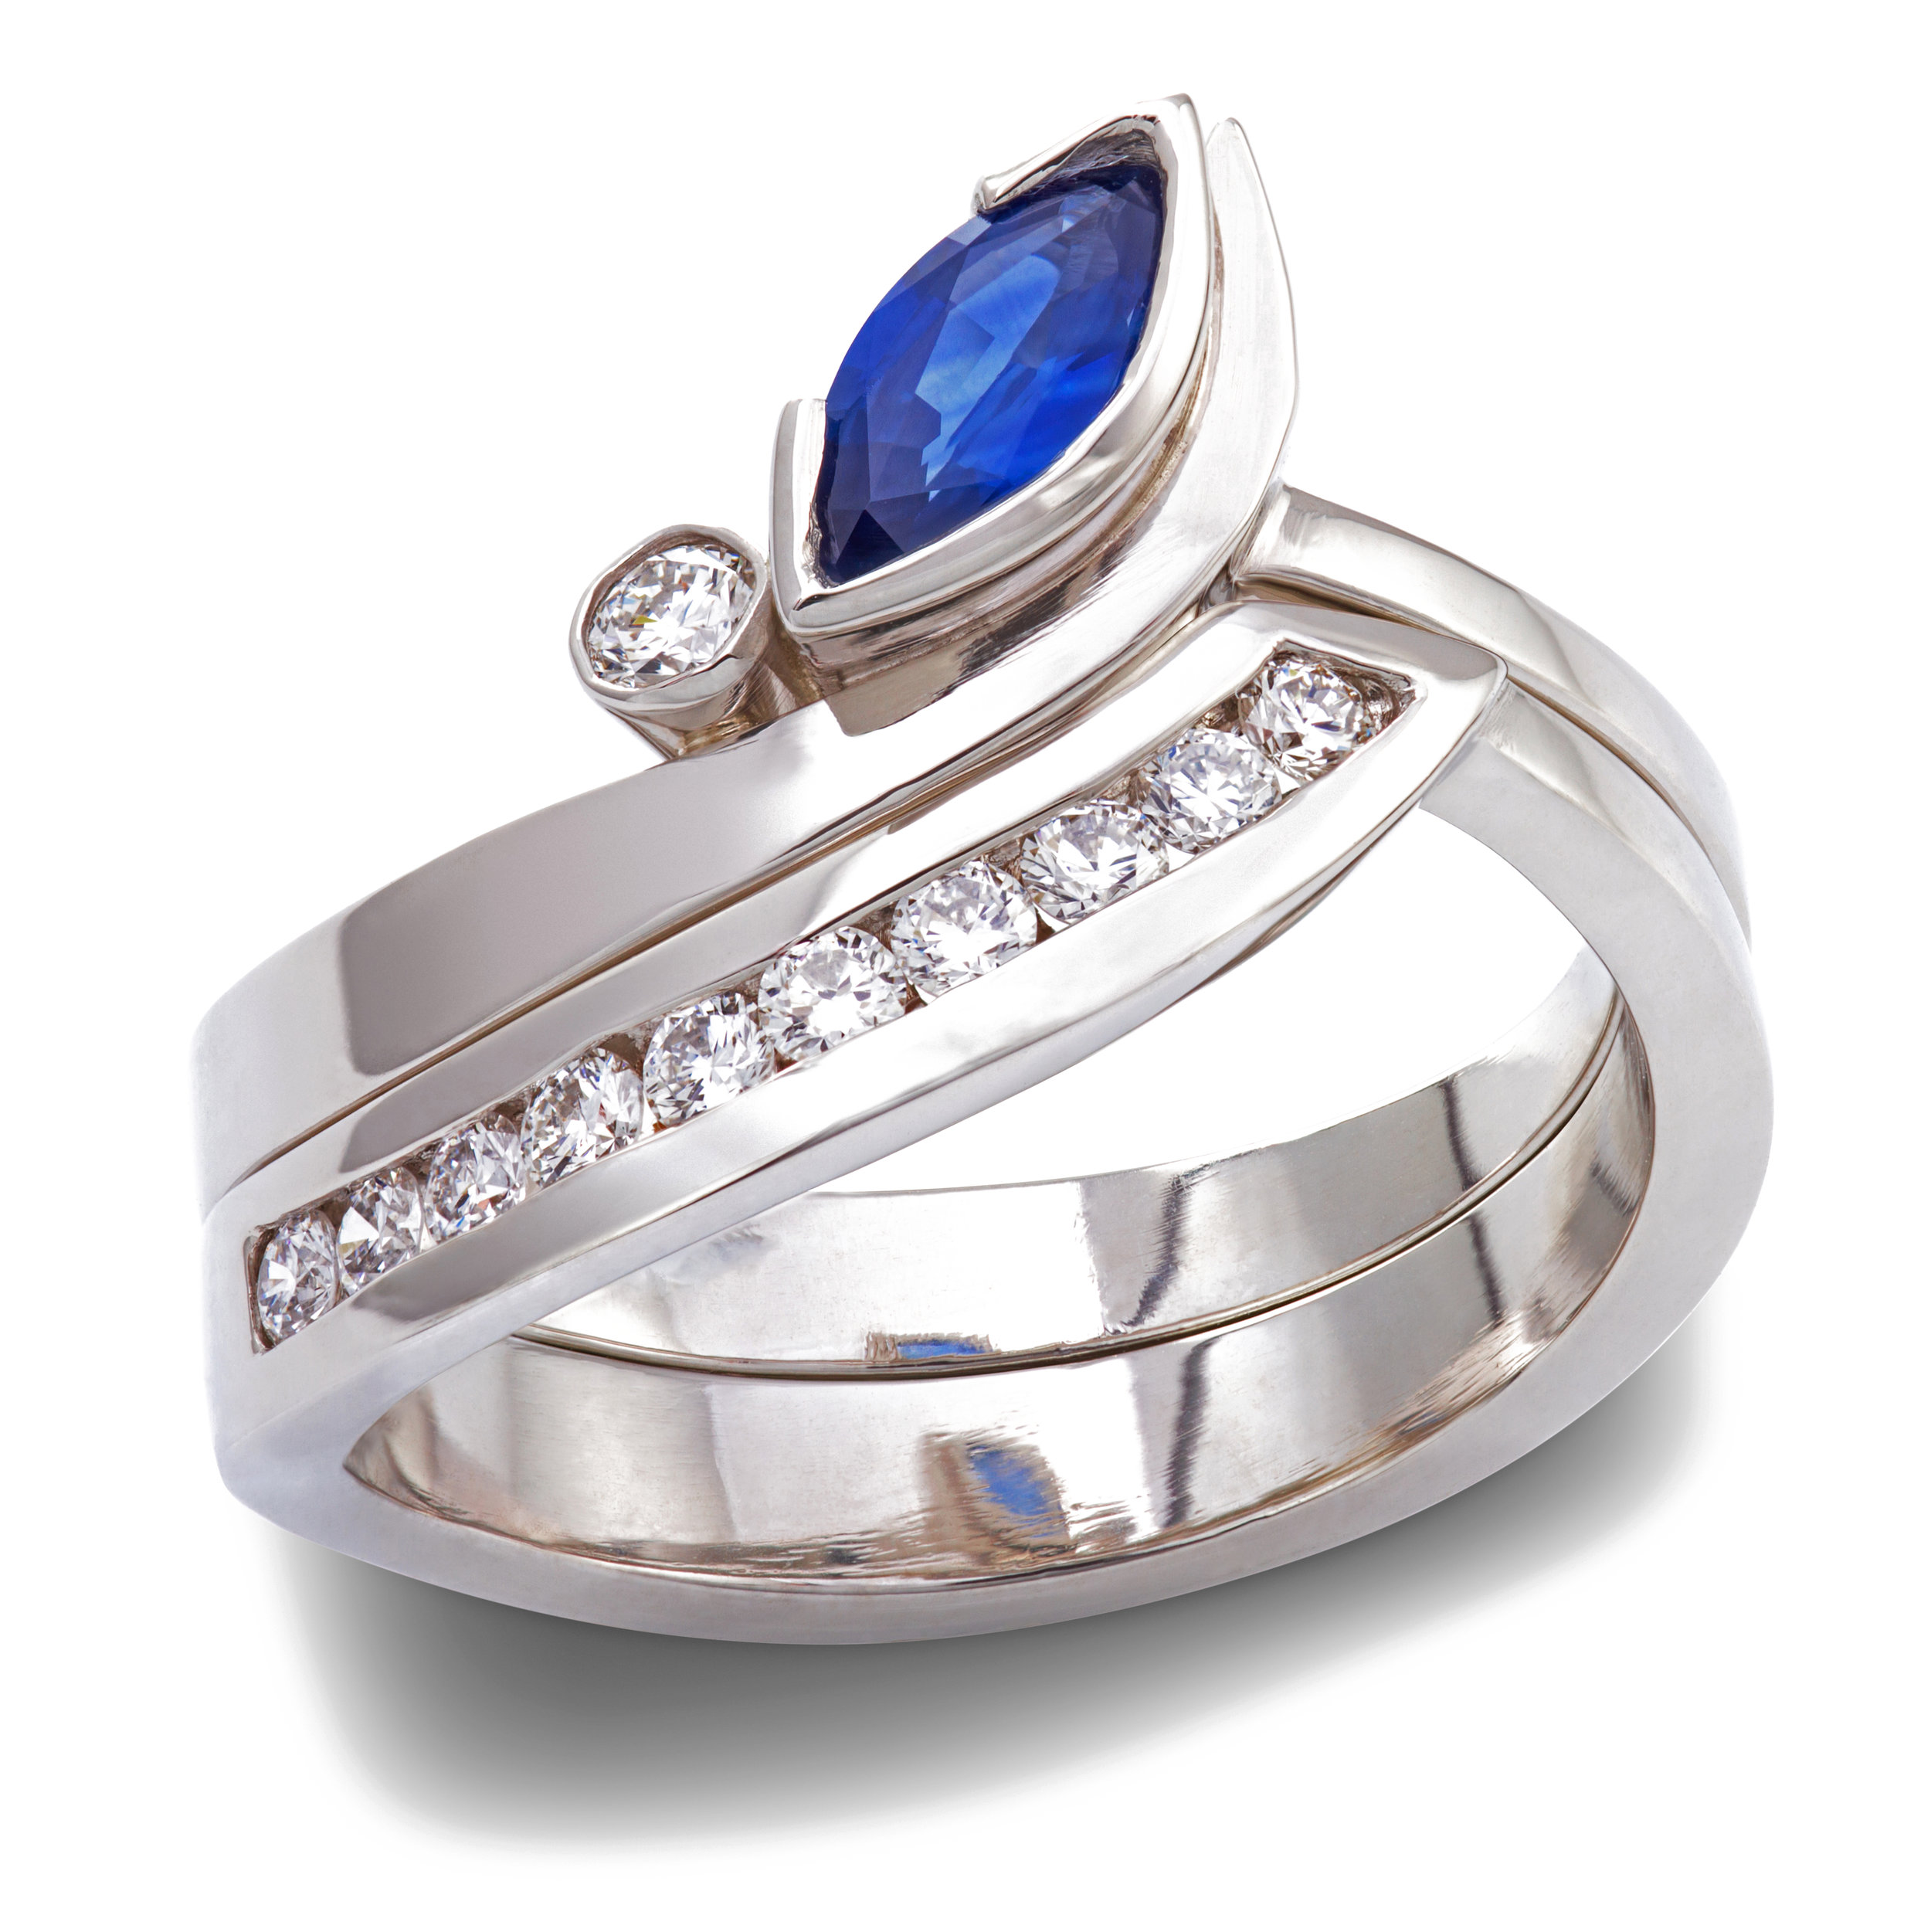 Platinum, sapphire and diamond engagement & wedding ring set - available to buy